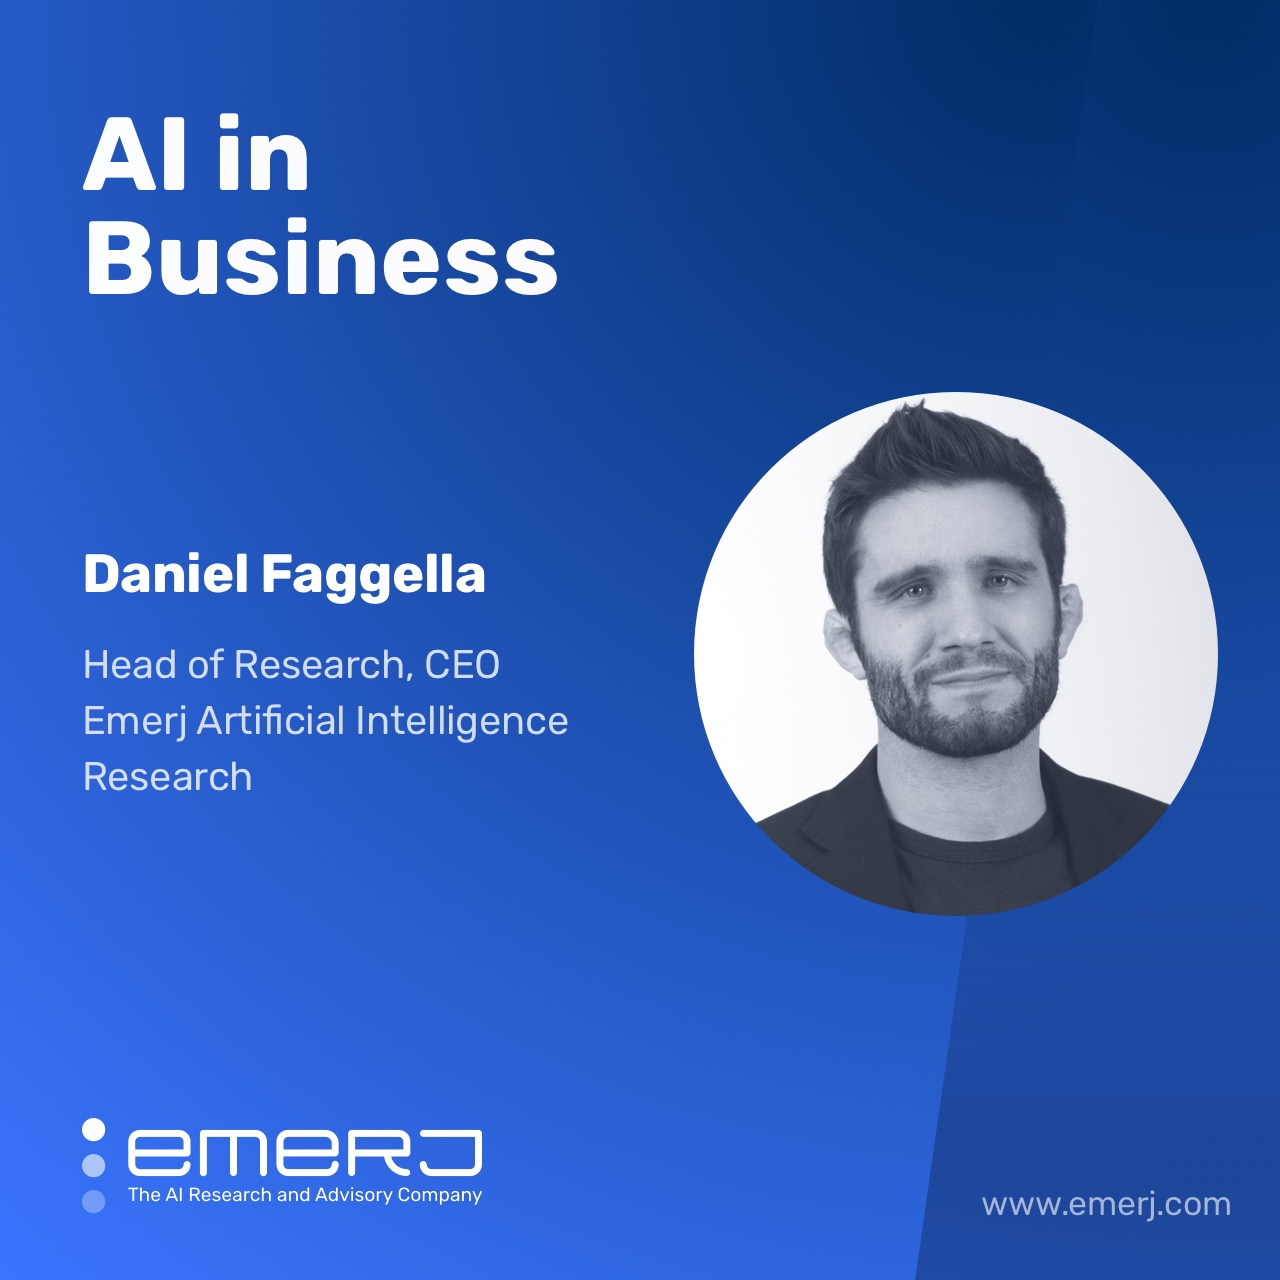 Changes to the AI in Business Podcast, and Exciting News Ahead - with Daniel Faggella of Emerj Artificial Intelligence Research